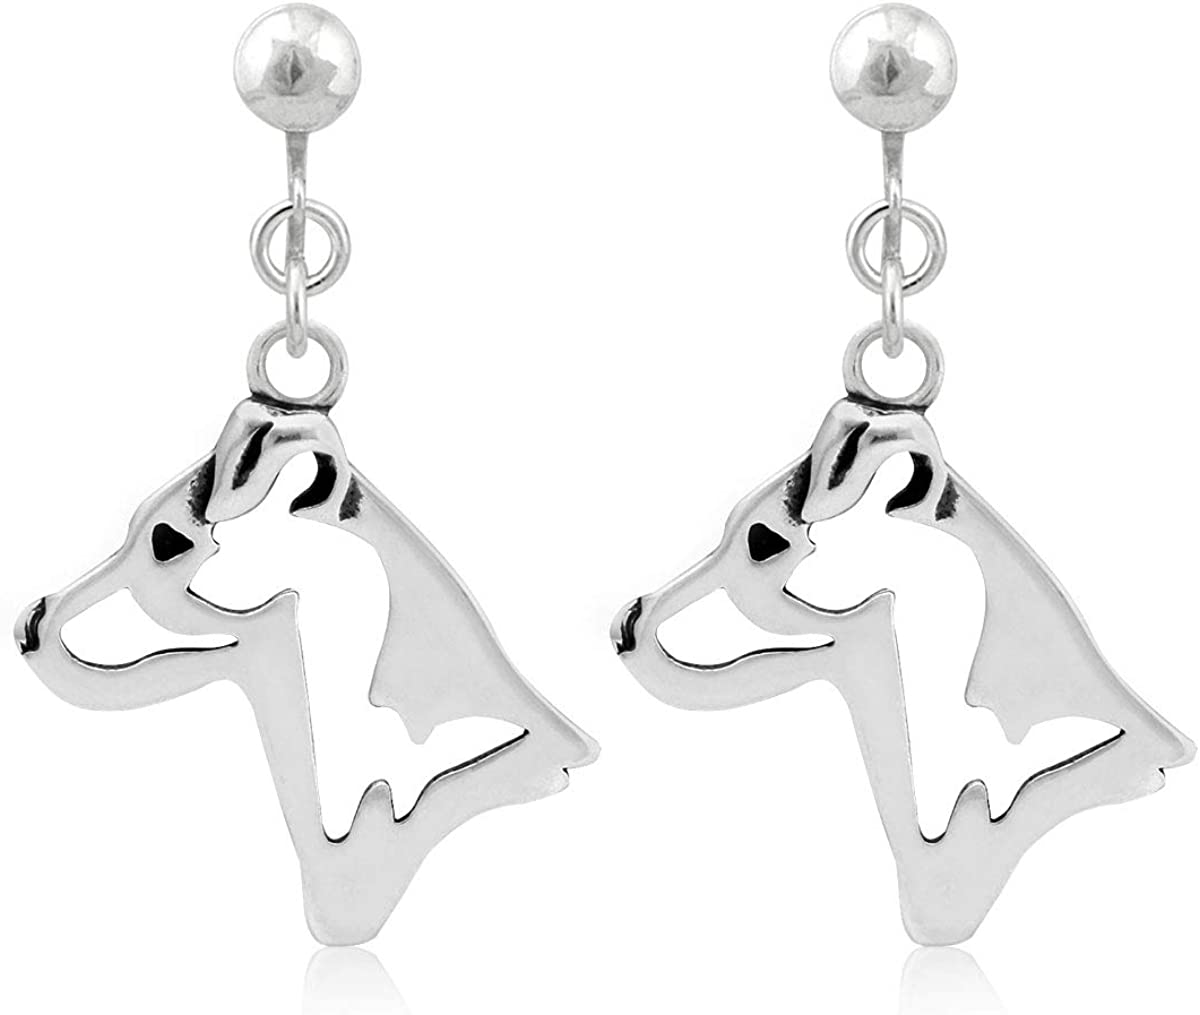 Discount New arrival is also underway Sterling Silver Parson Russell Terrier Smooth He Earrings Coat